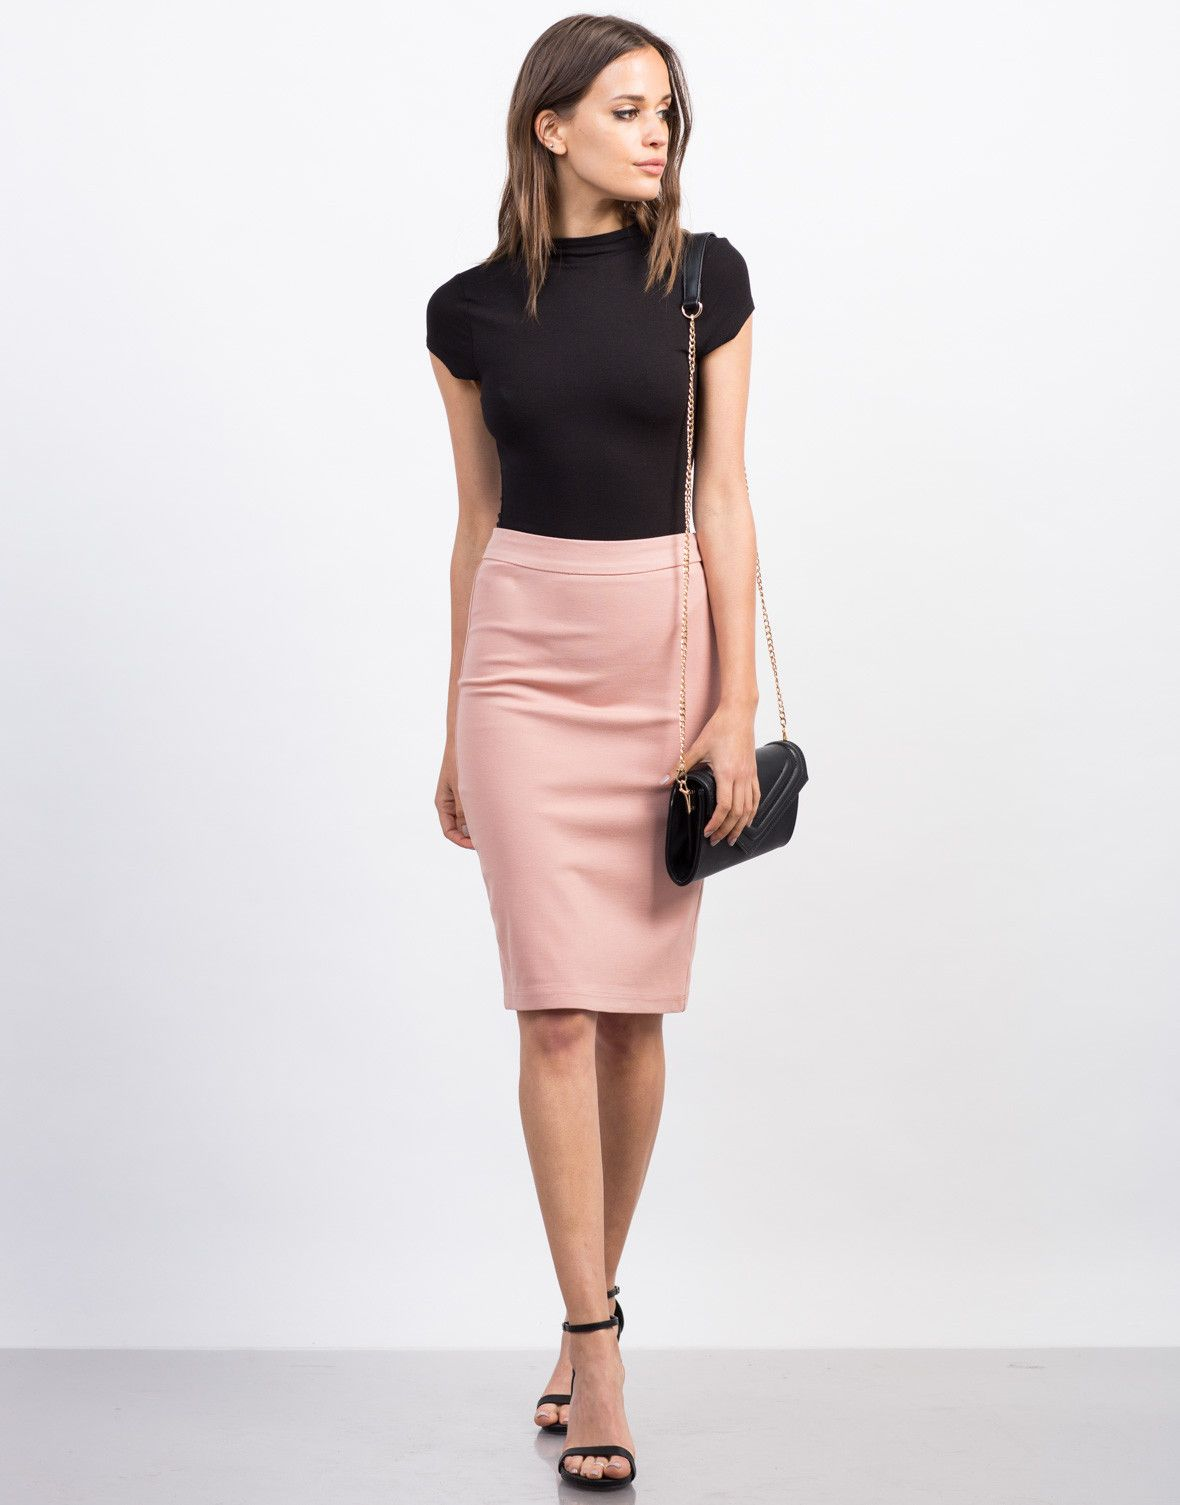 Side Zipper Pencil Skirt | Pencil skirts